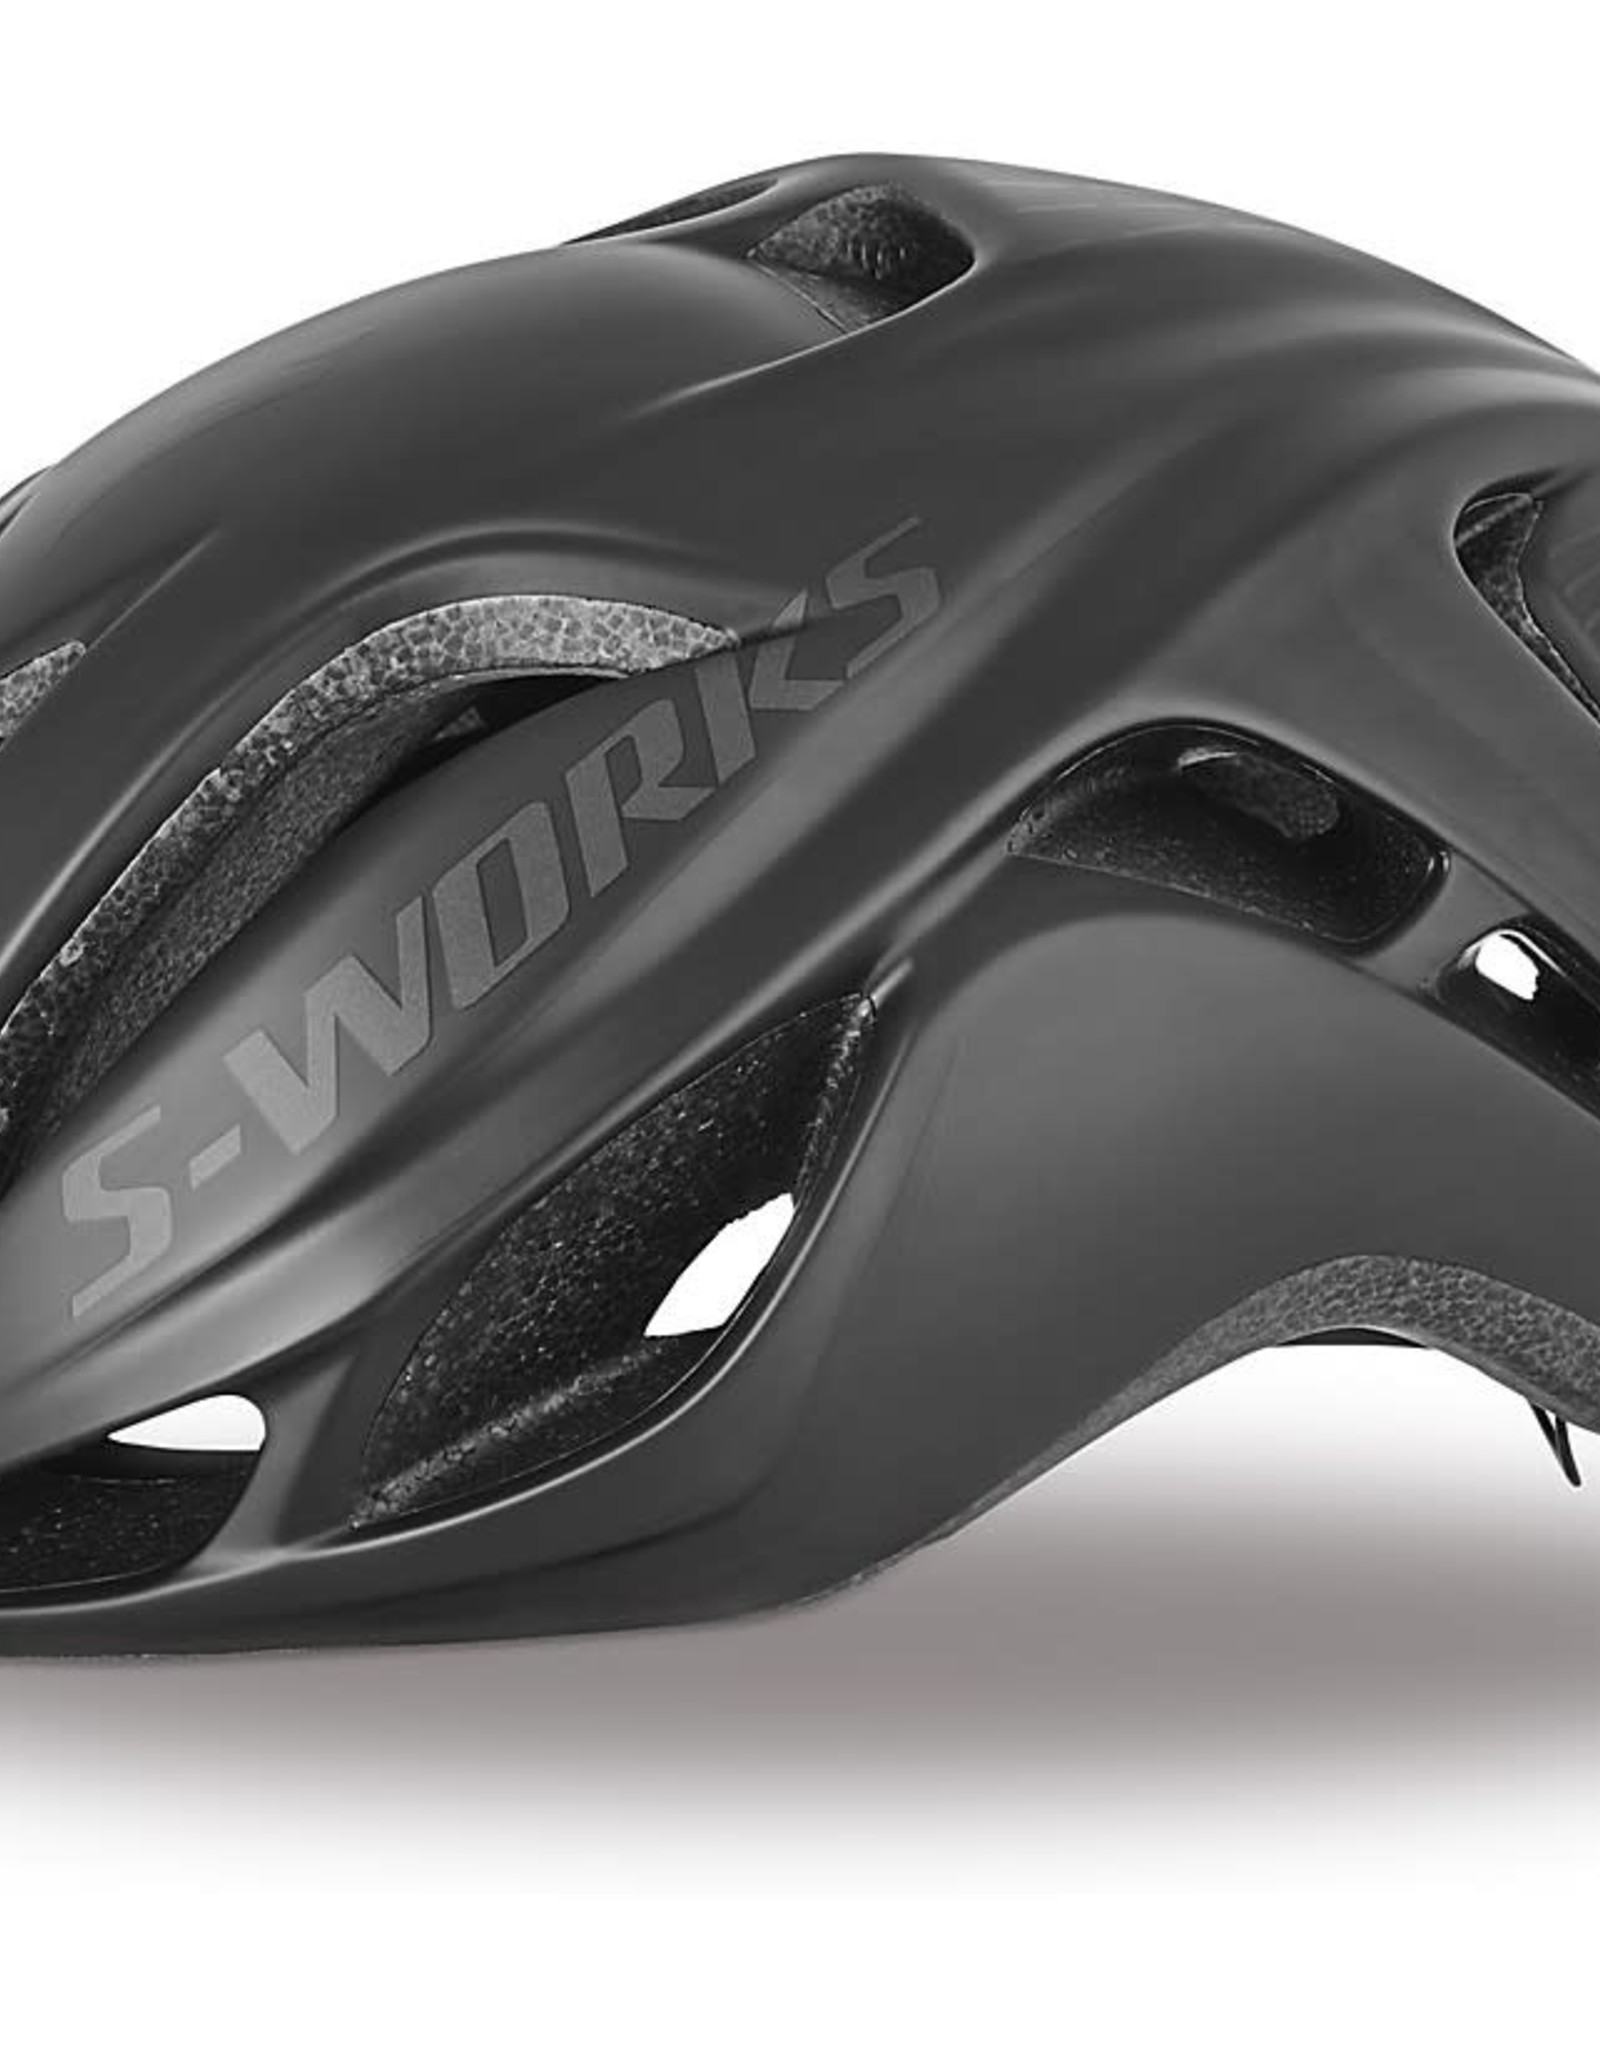 SPECIALIZED 2018 S-WORKS EVADE TRI HELMET - Dipped Black Small